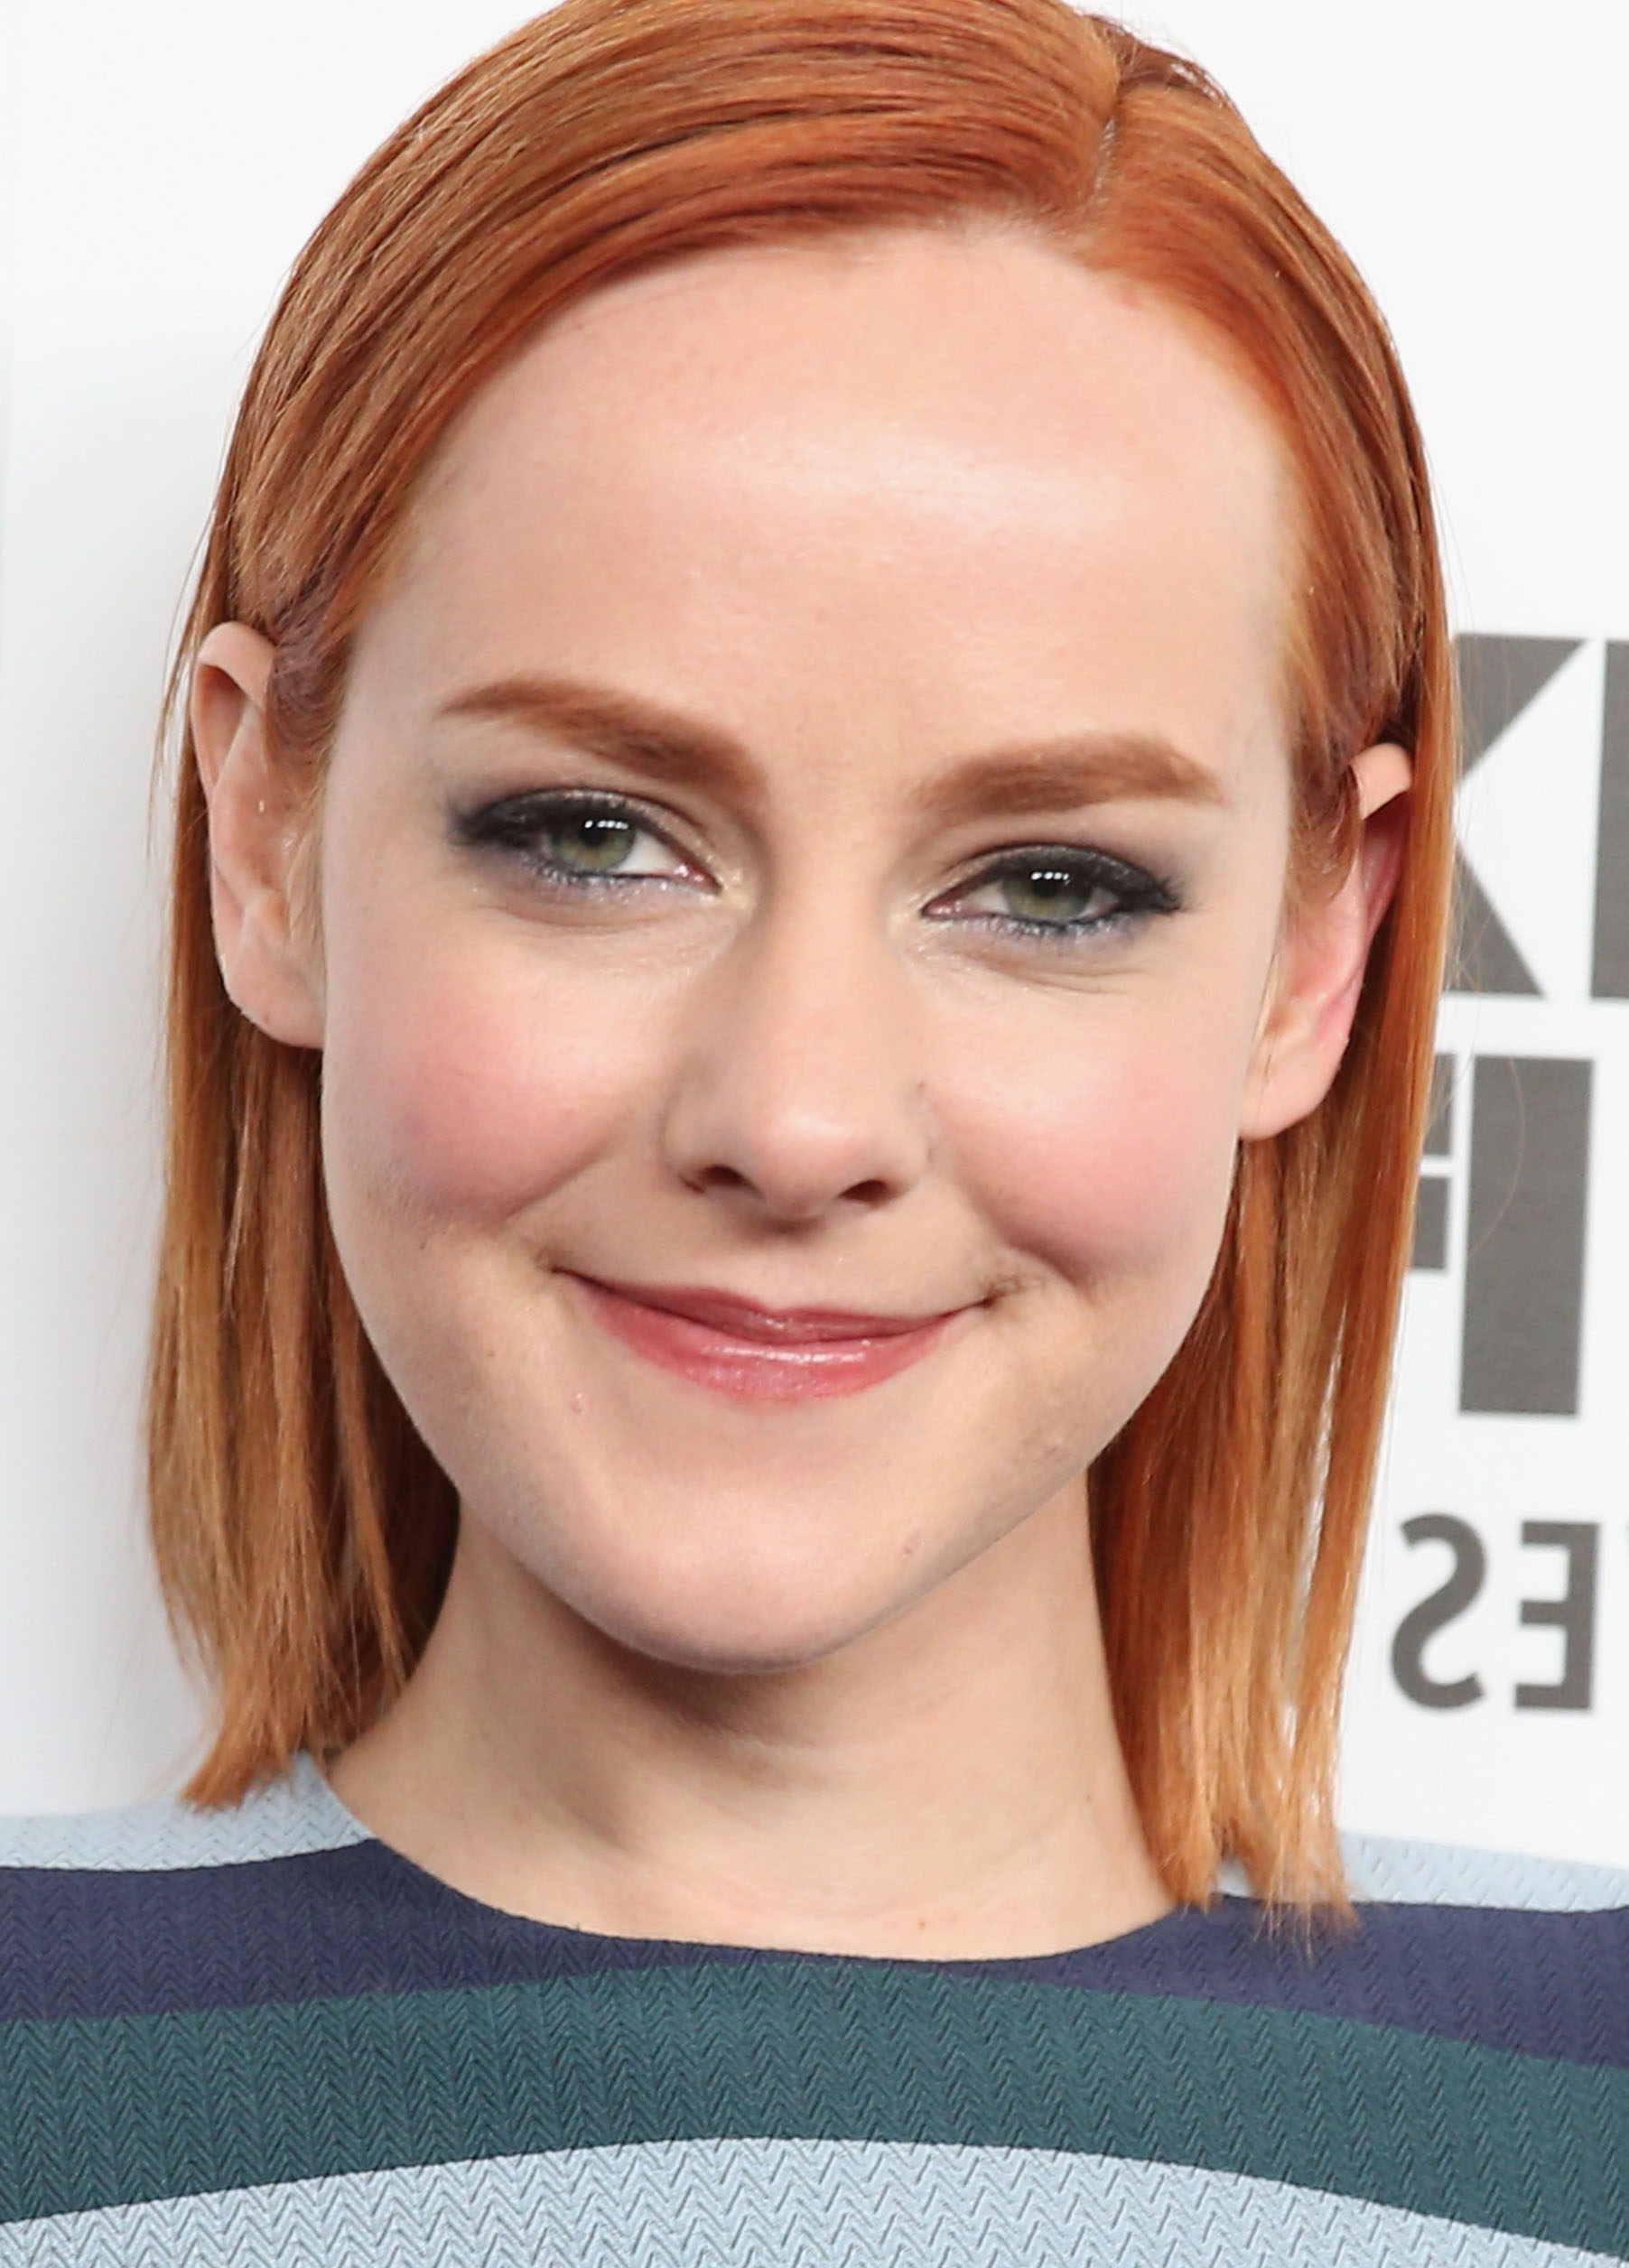 Oink Movie Actress Jena Malone Booty Pics - Fappening Sauce-6984